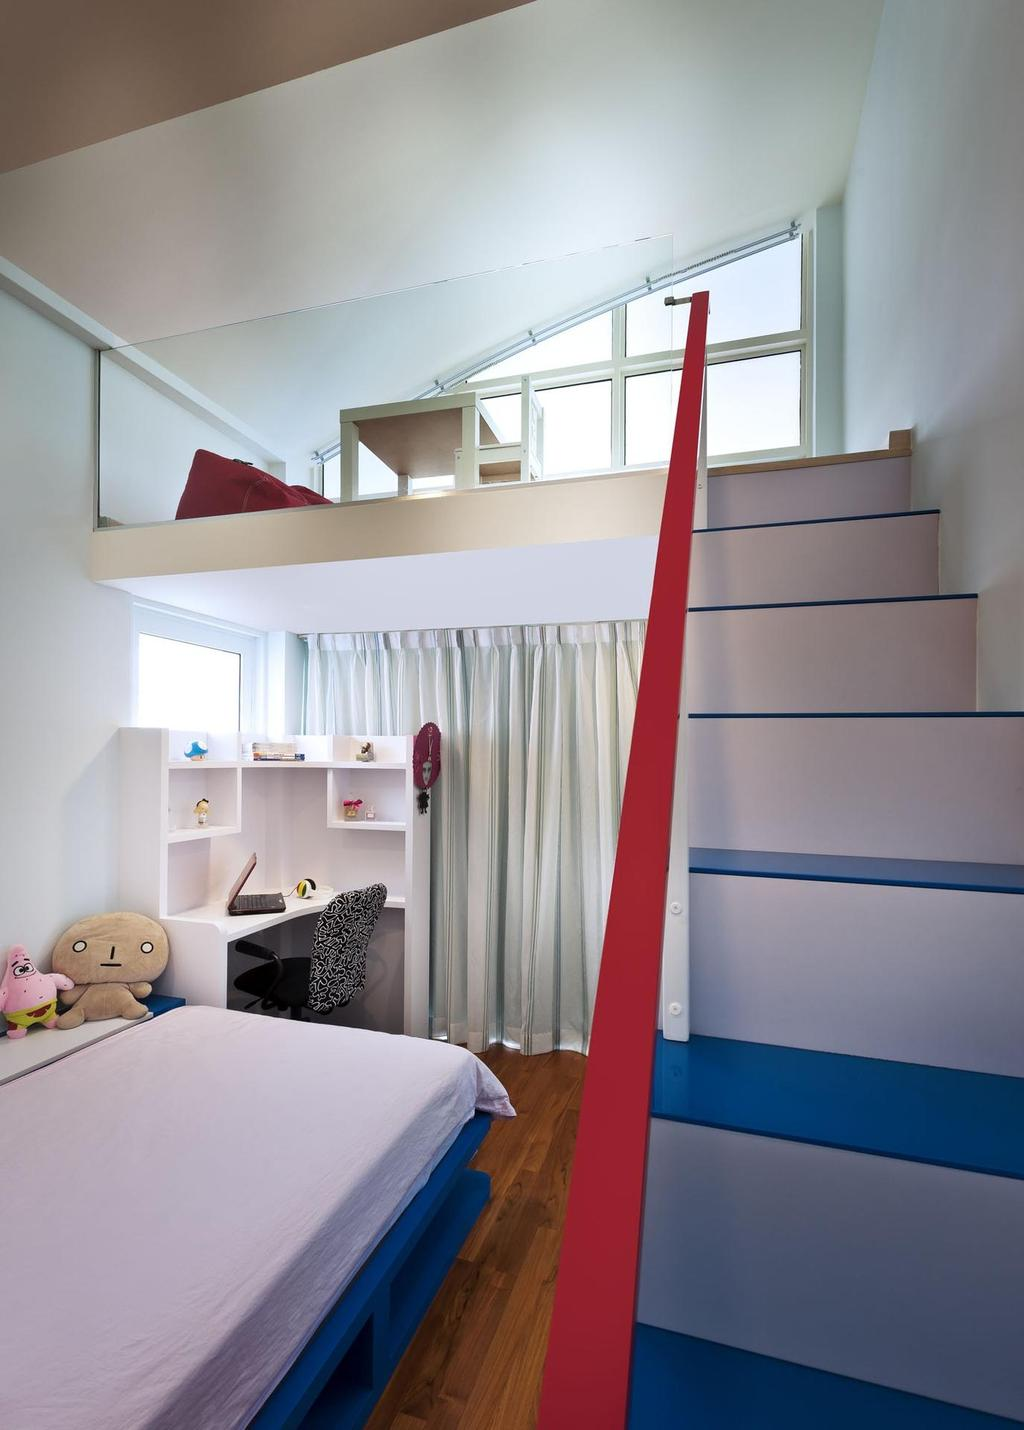 Contemporary, Condo, Bedroom, Cascadia, Interior Designer, Space Vision Design, Loft, Kids, Kids Room, Study Table, Table, Parquet, Curtains, Shelf, Staircase, Stairs, Slanted Ceiling, Toy